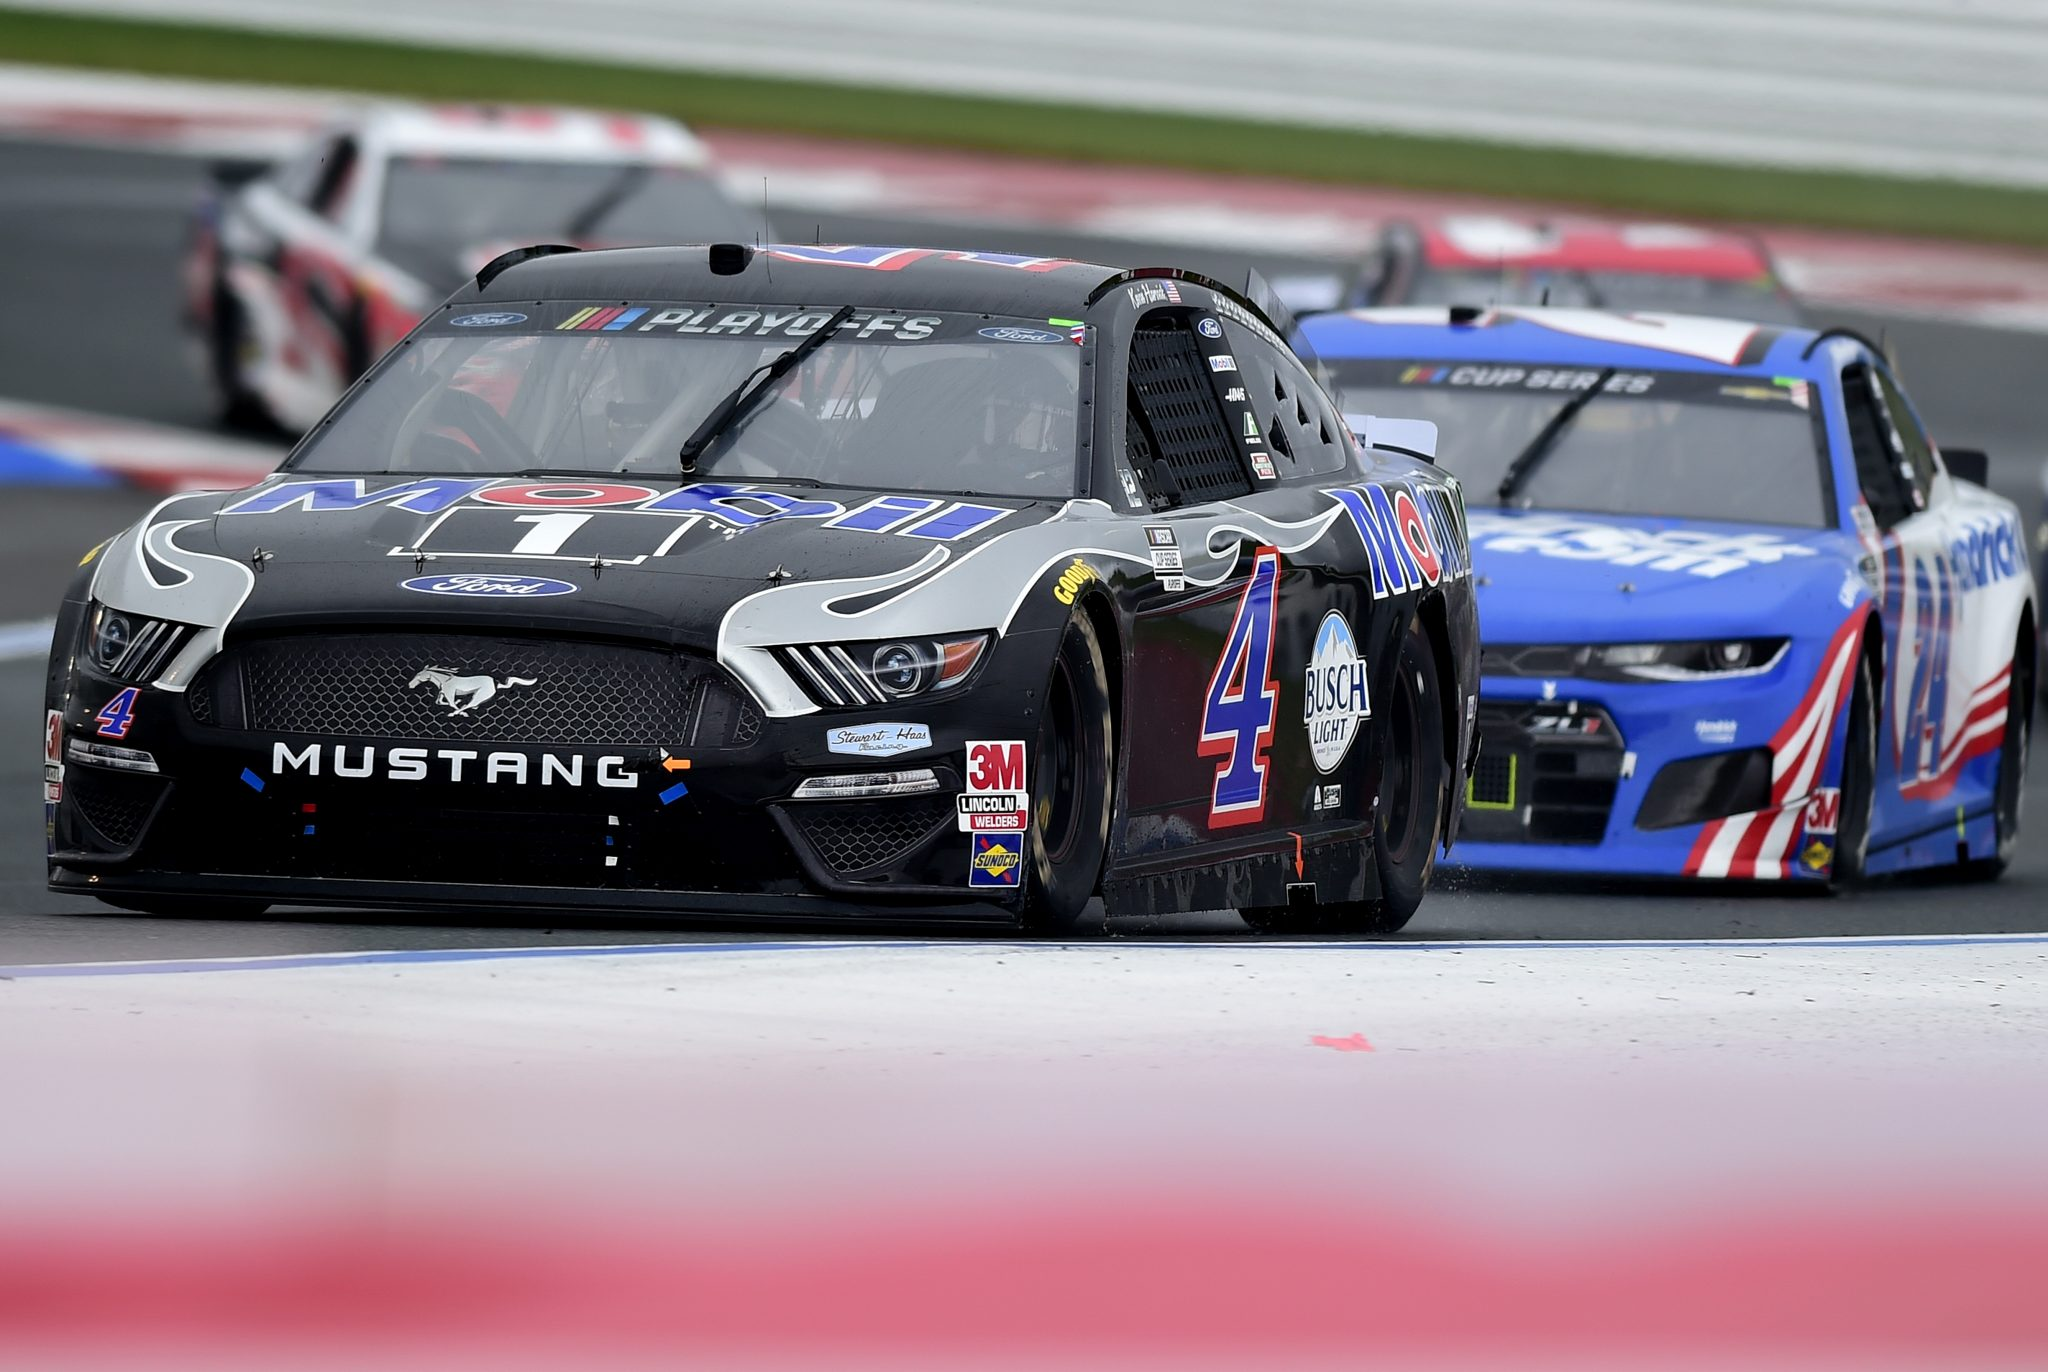 CONCORD, NORTH CAROLINA - OCTOBER 11: Kevin Harvick, driver of the #4 Mobil 1 Ford, drives during the NASCAR Cup Series Bank of America ROVAL 400 at Charlotte Motor Speedway on October 11, 2020 in Concord, North Carolina. (Photo by Jared C. Tilton/Getty Images) | Getty Images